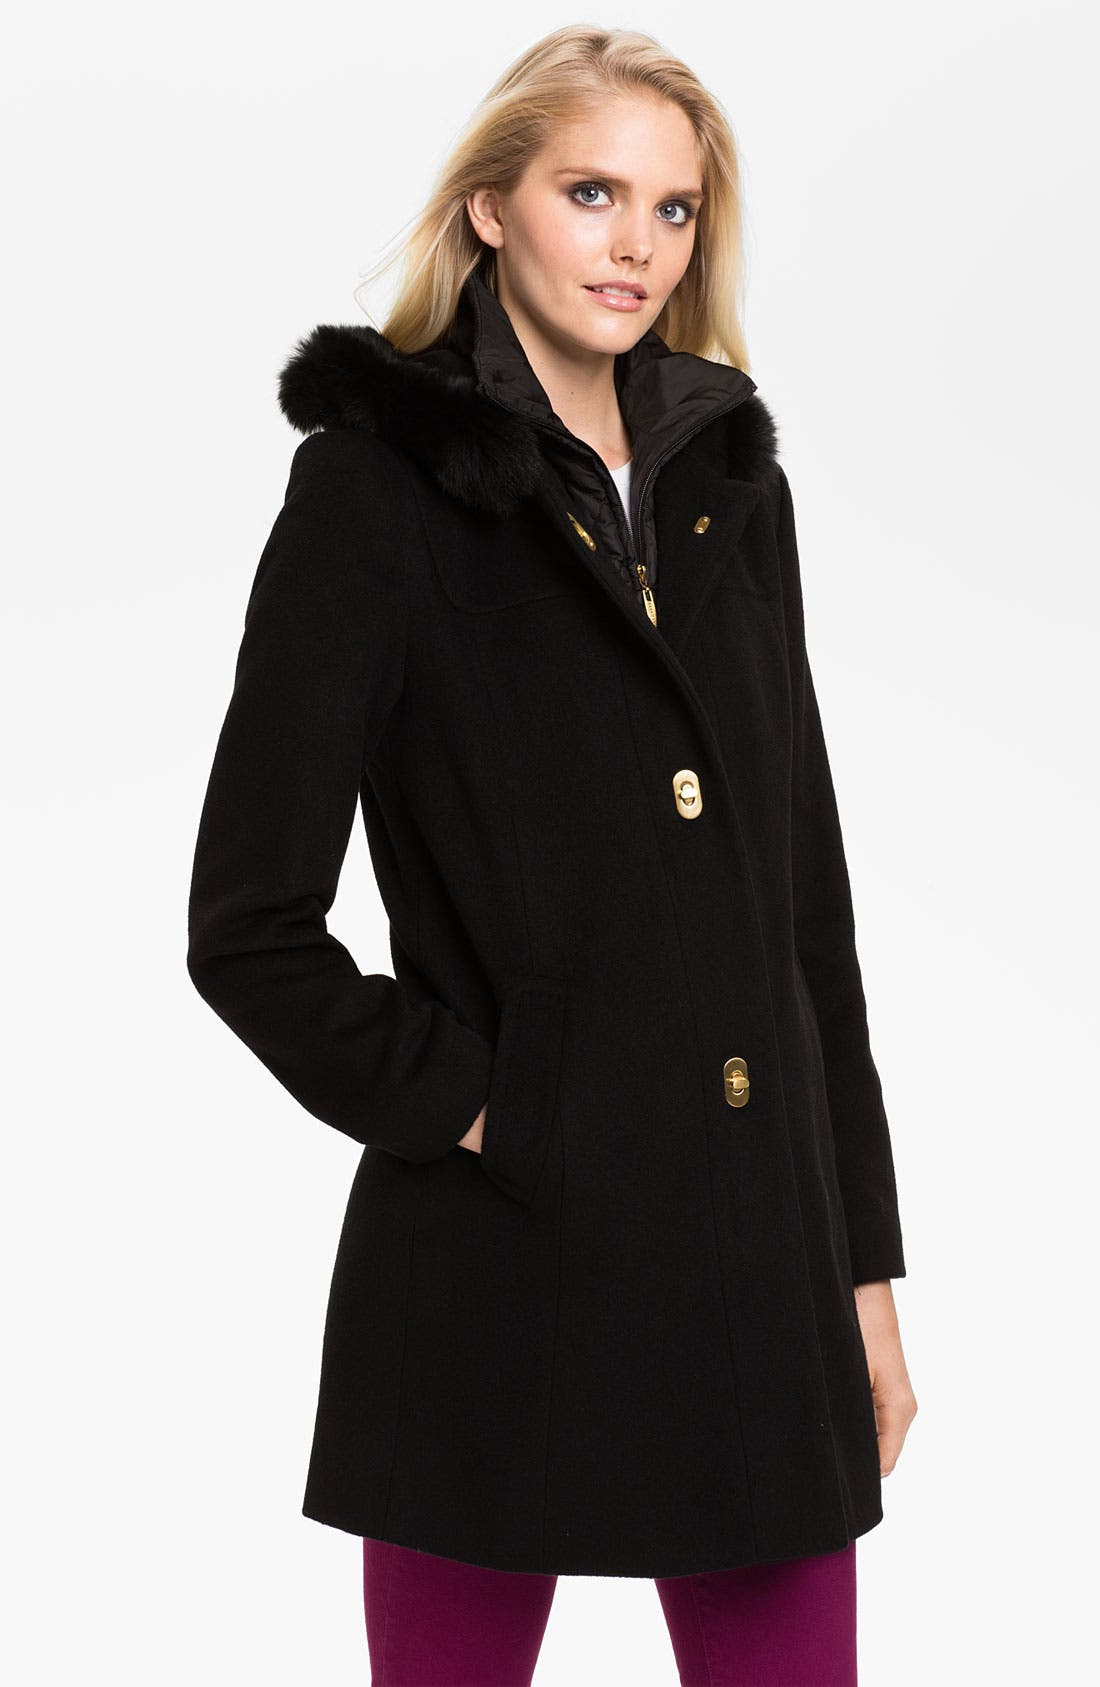 Alternate Image 1 Selected - Ellen Tracy Turnkey Coat with Fur Trim Hood (Online Exclusive)